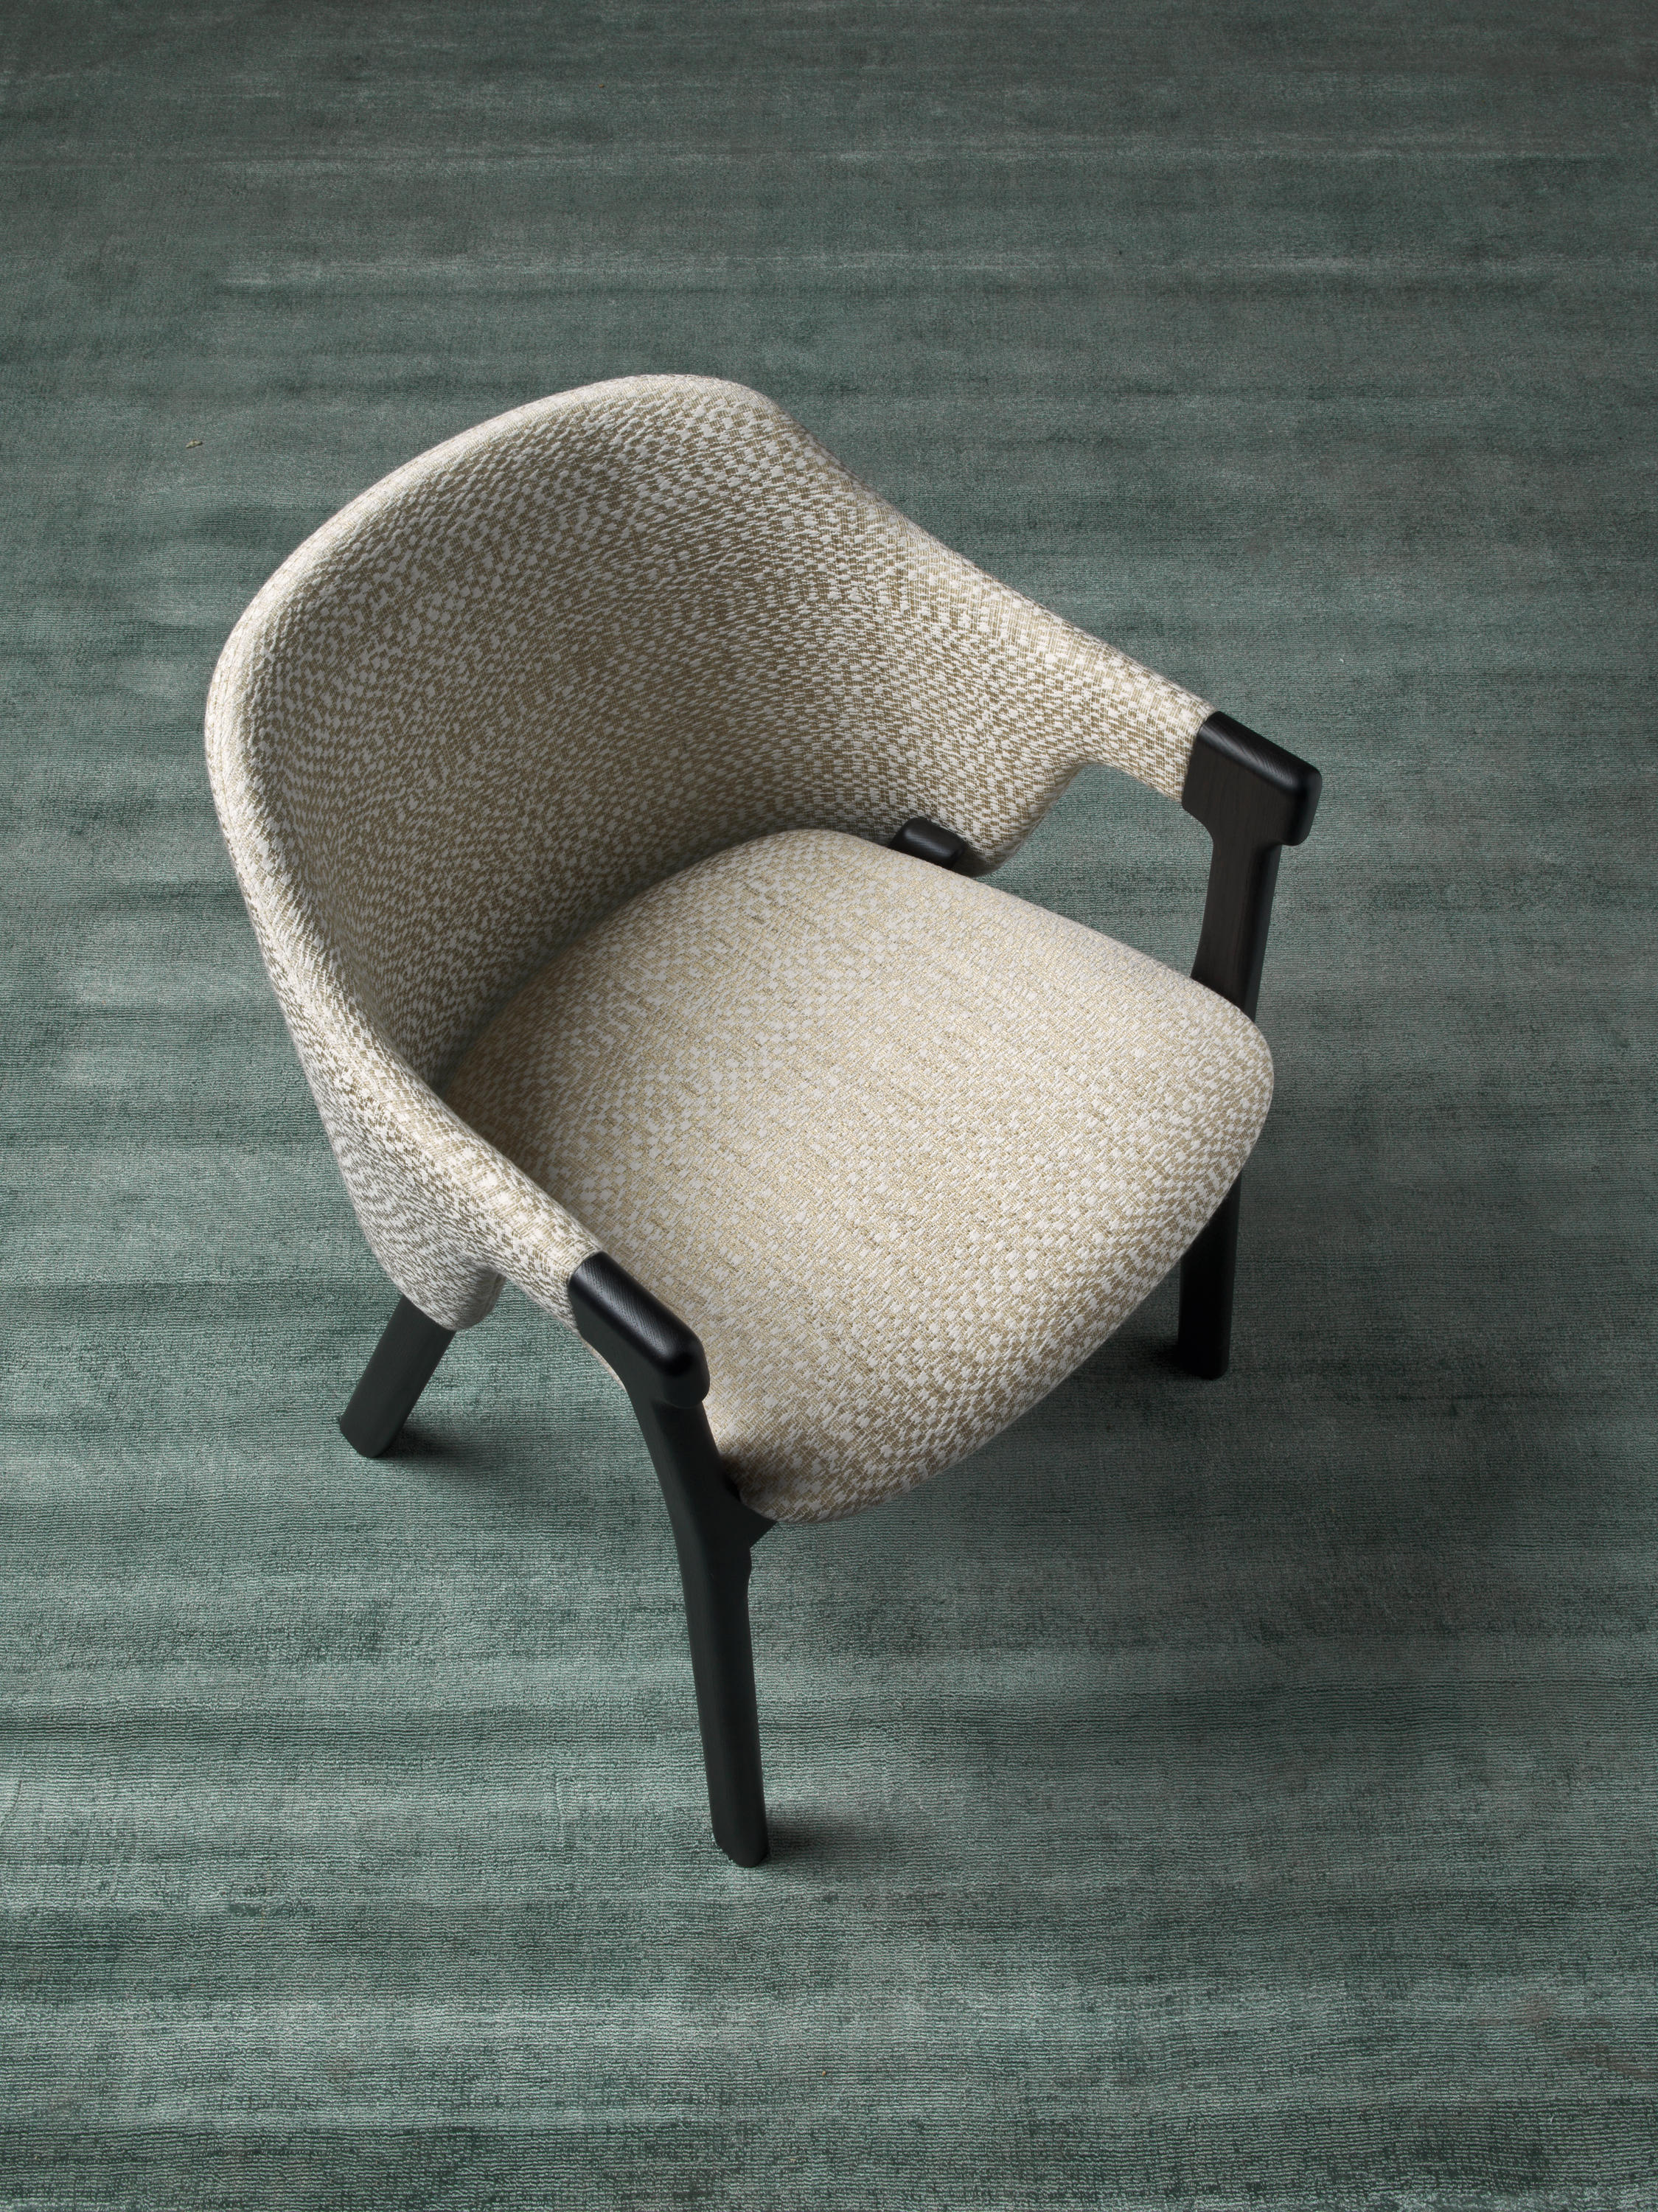 Loden 02 Chairs From Very Wood Architonic